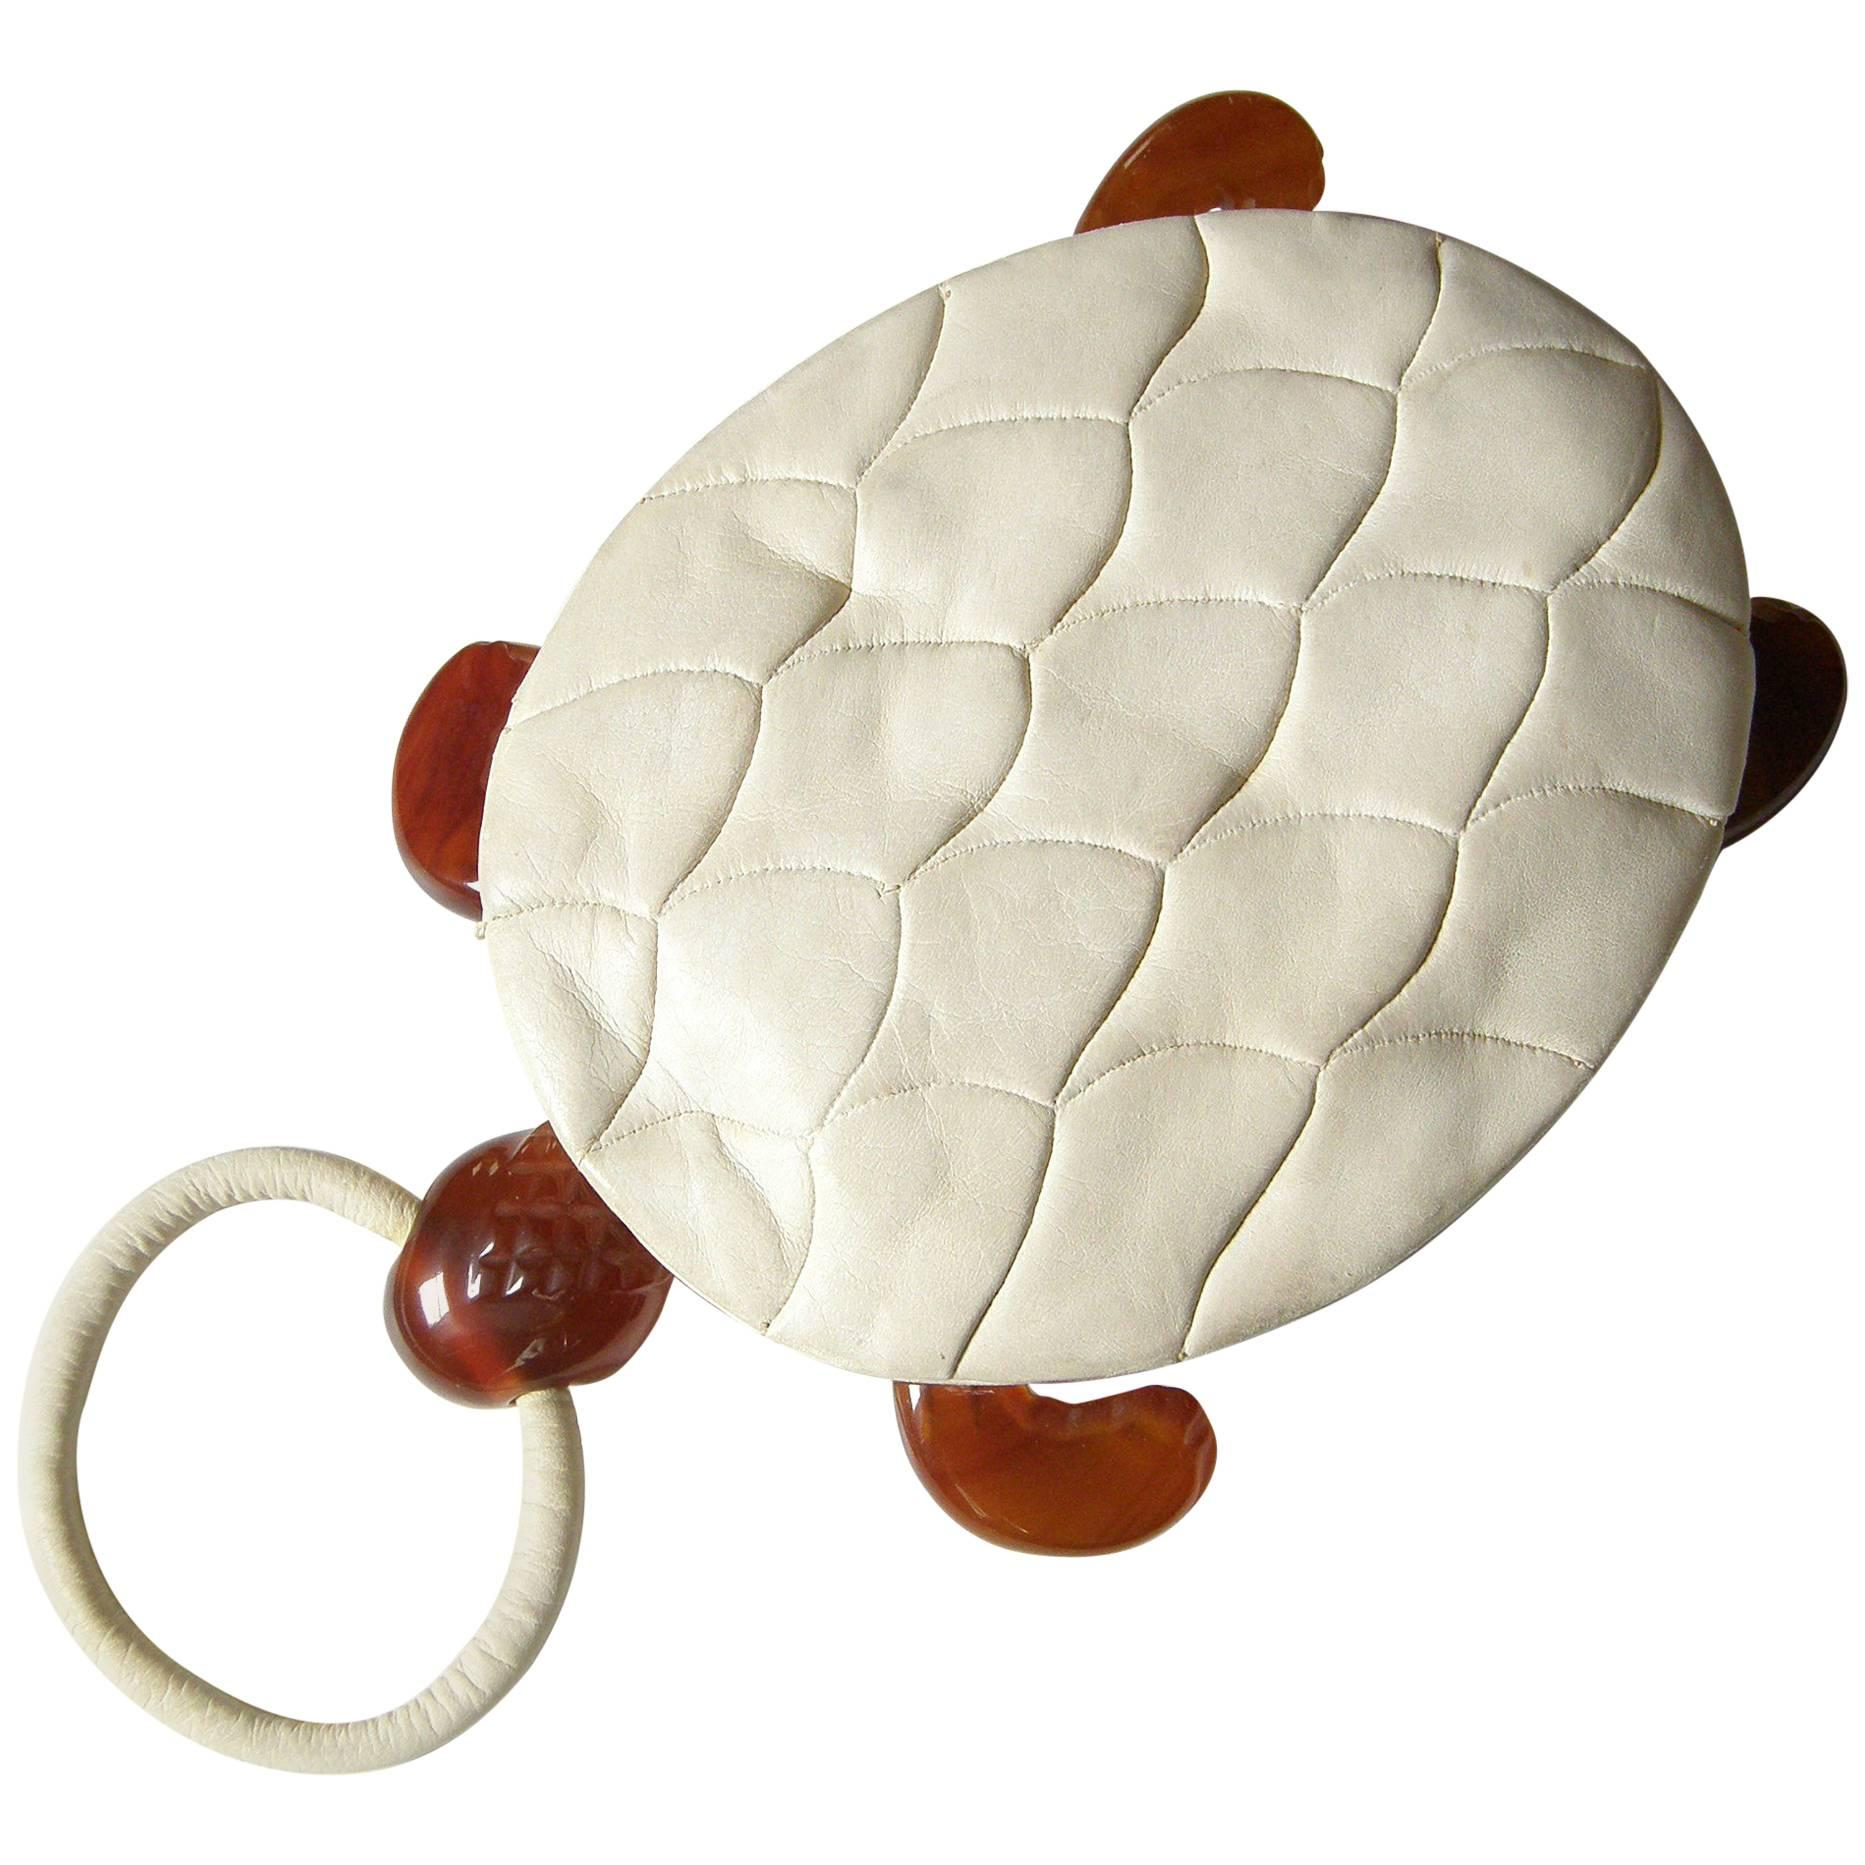 1stdibs Turtle Shaped Handbag In Cream Leather And Carved Bakelite 2CWMAtil